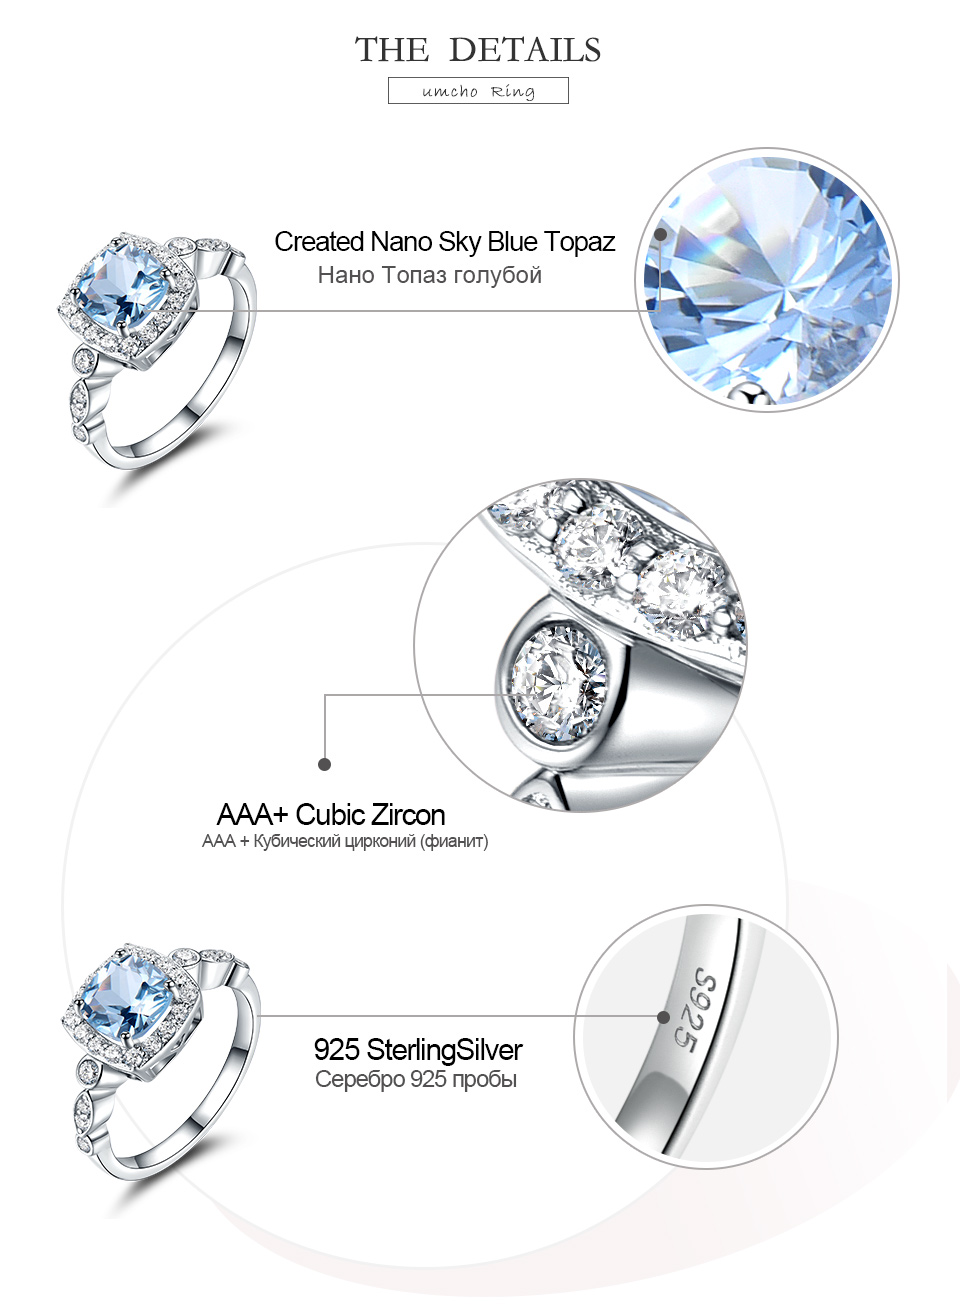 HTB1WIW1ev1H3KVjSZFBq6zSMXXaH UMCHO Real S925 Sterling Silver Rings for Women Blue Topaz Ring Gemstone Aquamarine Cushion Romantic Gift Engagement Jewelry